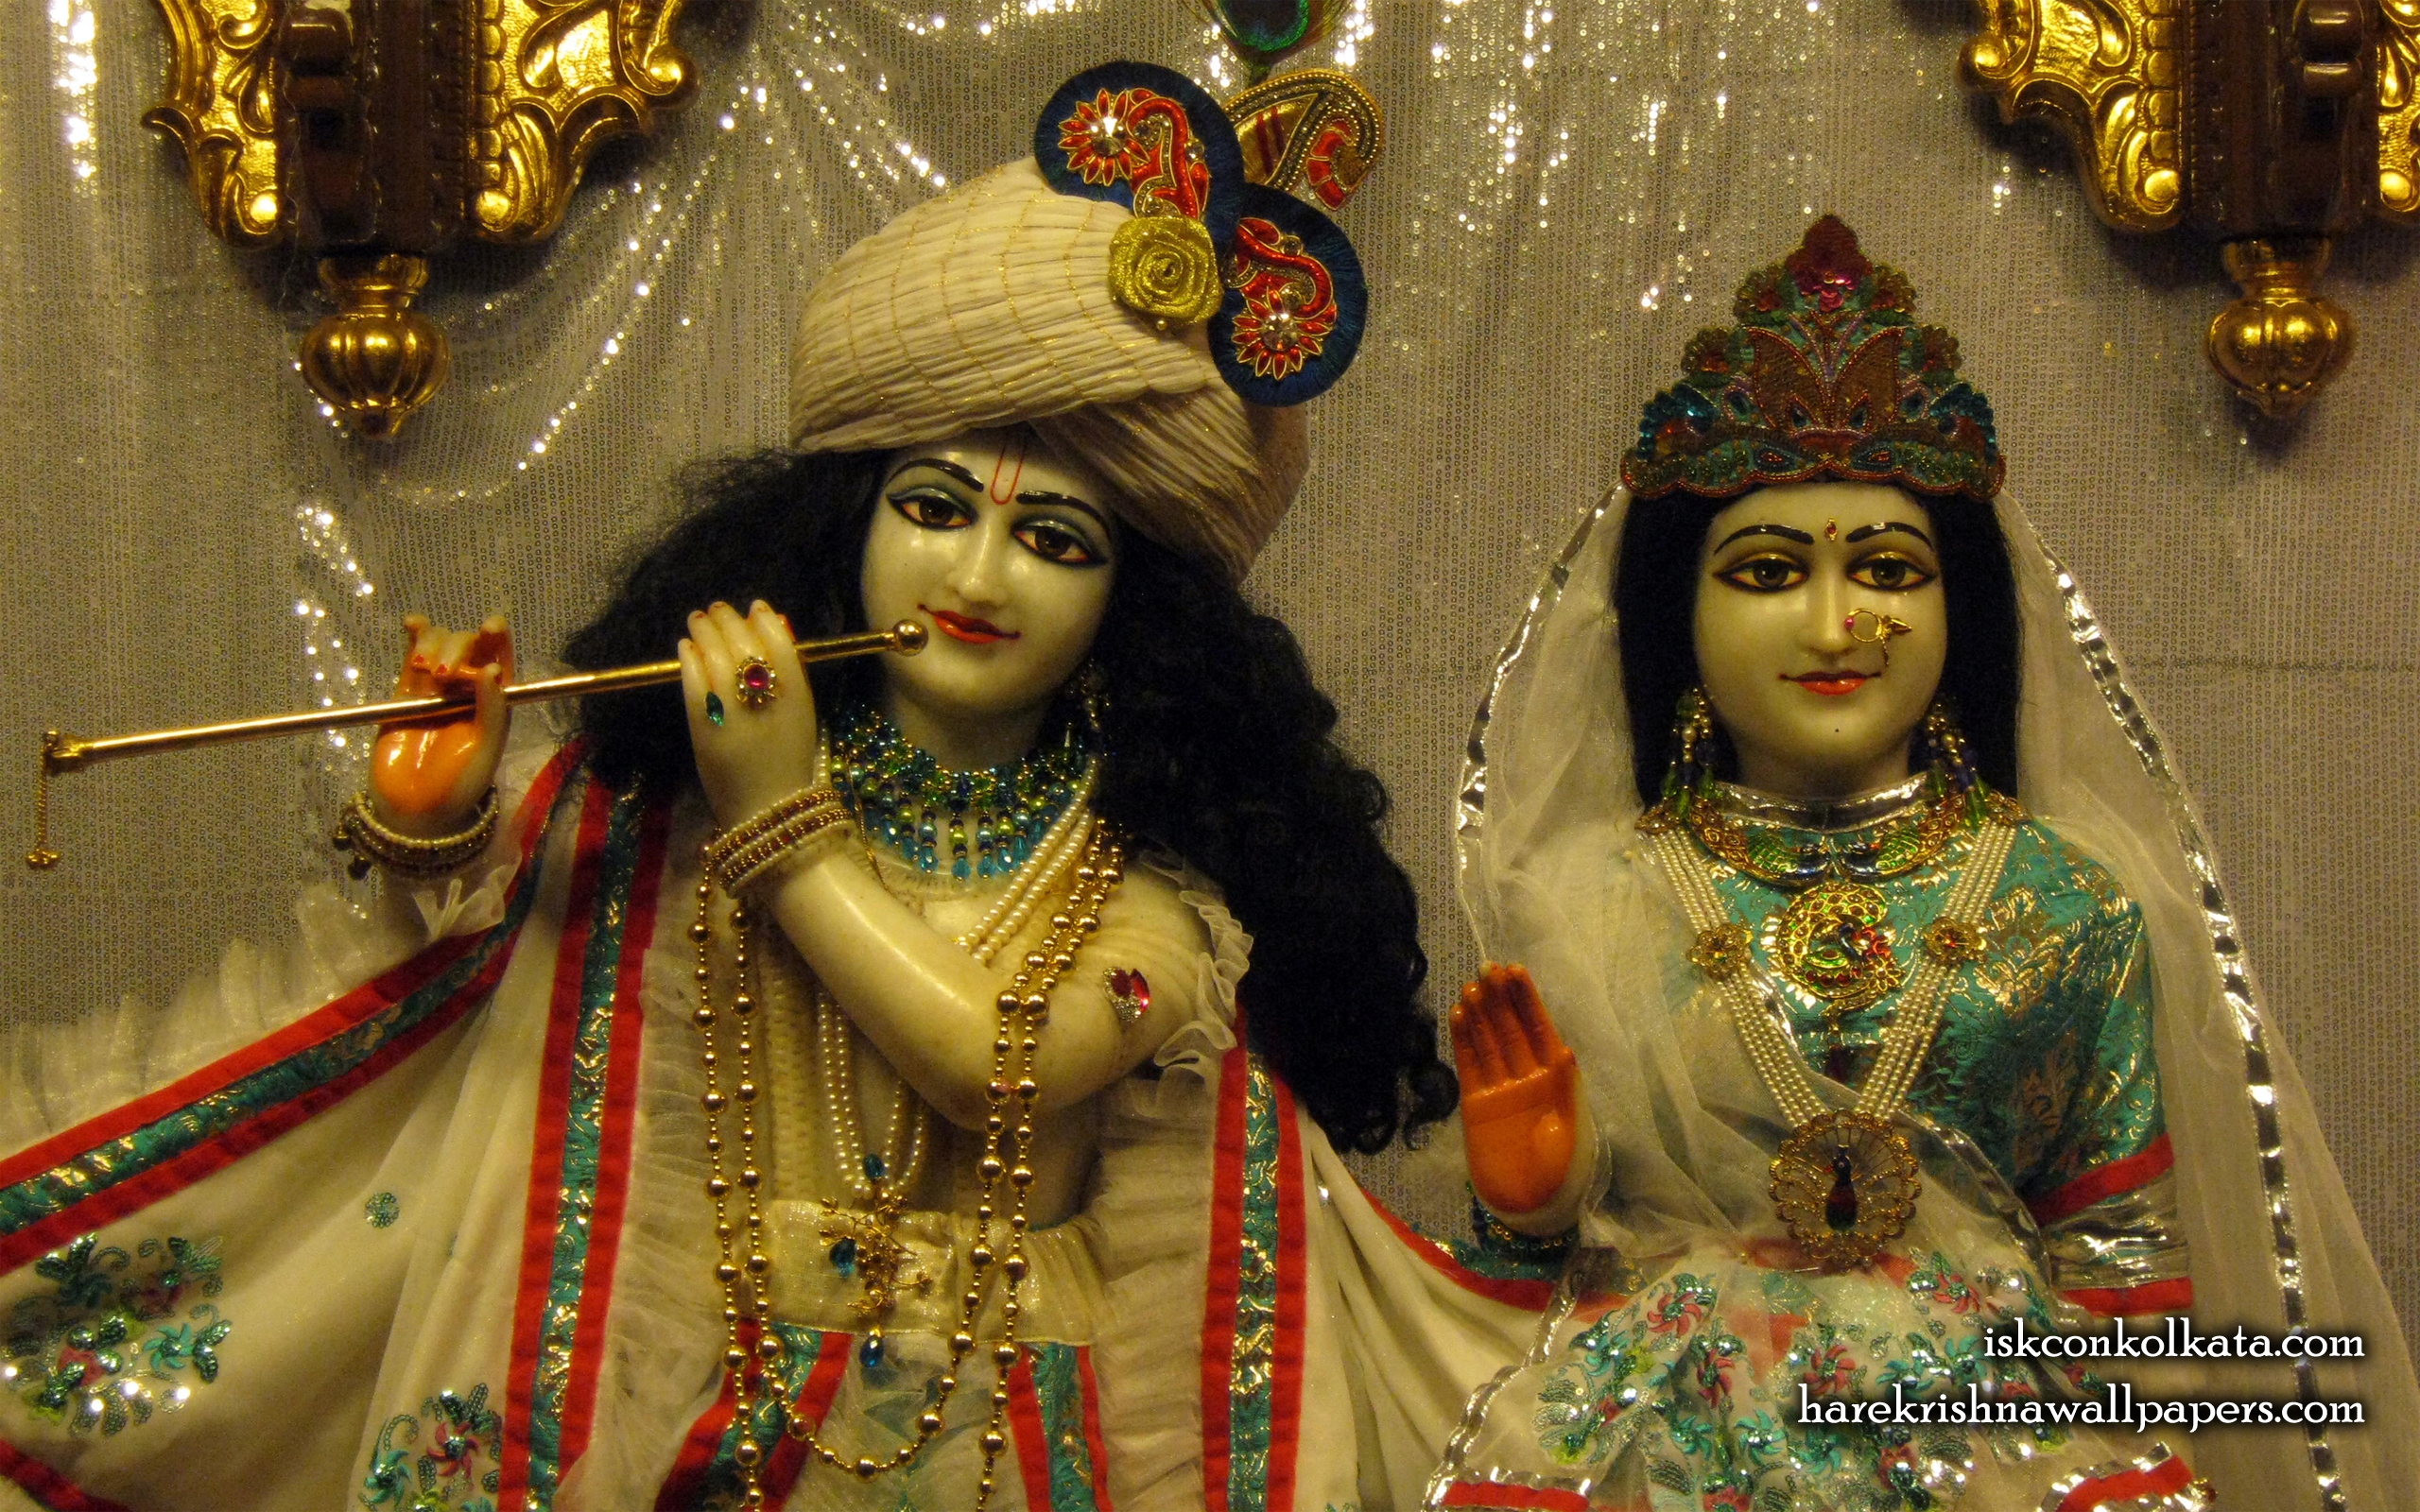 Sri Sri Radha Govinda Close up Wallpaper (003) Size 2560x1600 Download